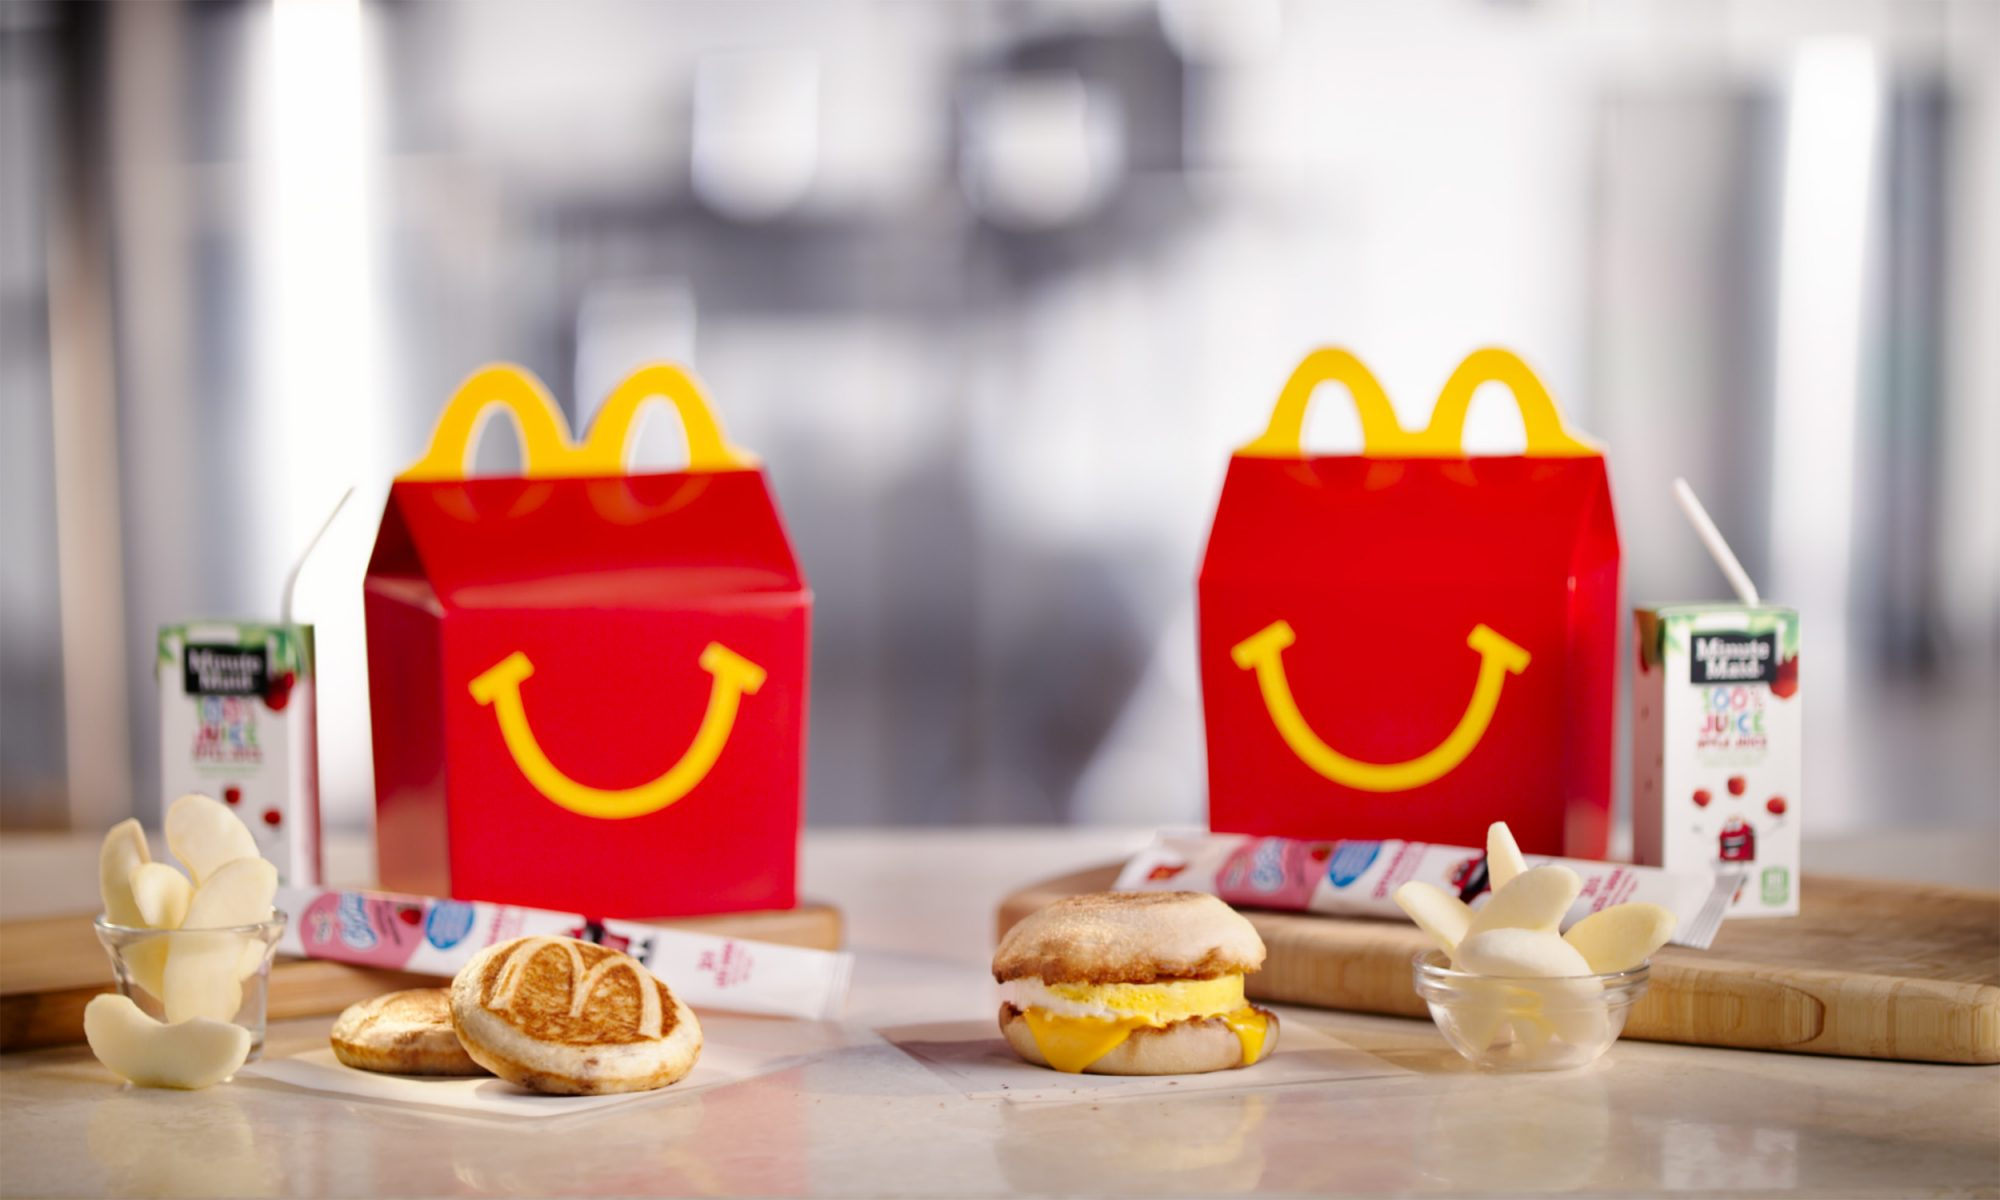 EC: McDonald's Breakfast Happy Meals Are Here, but Only in One City